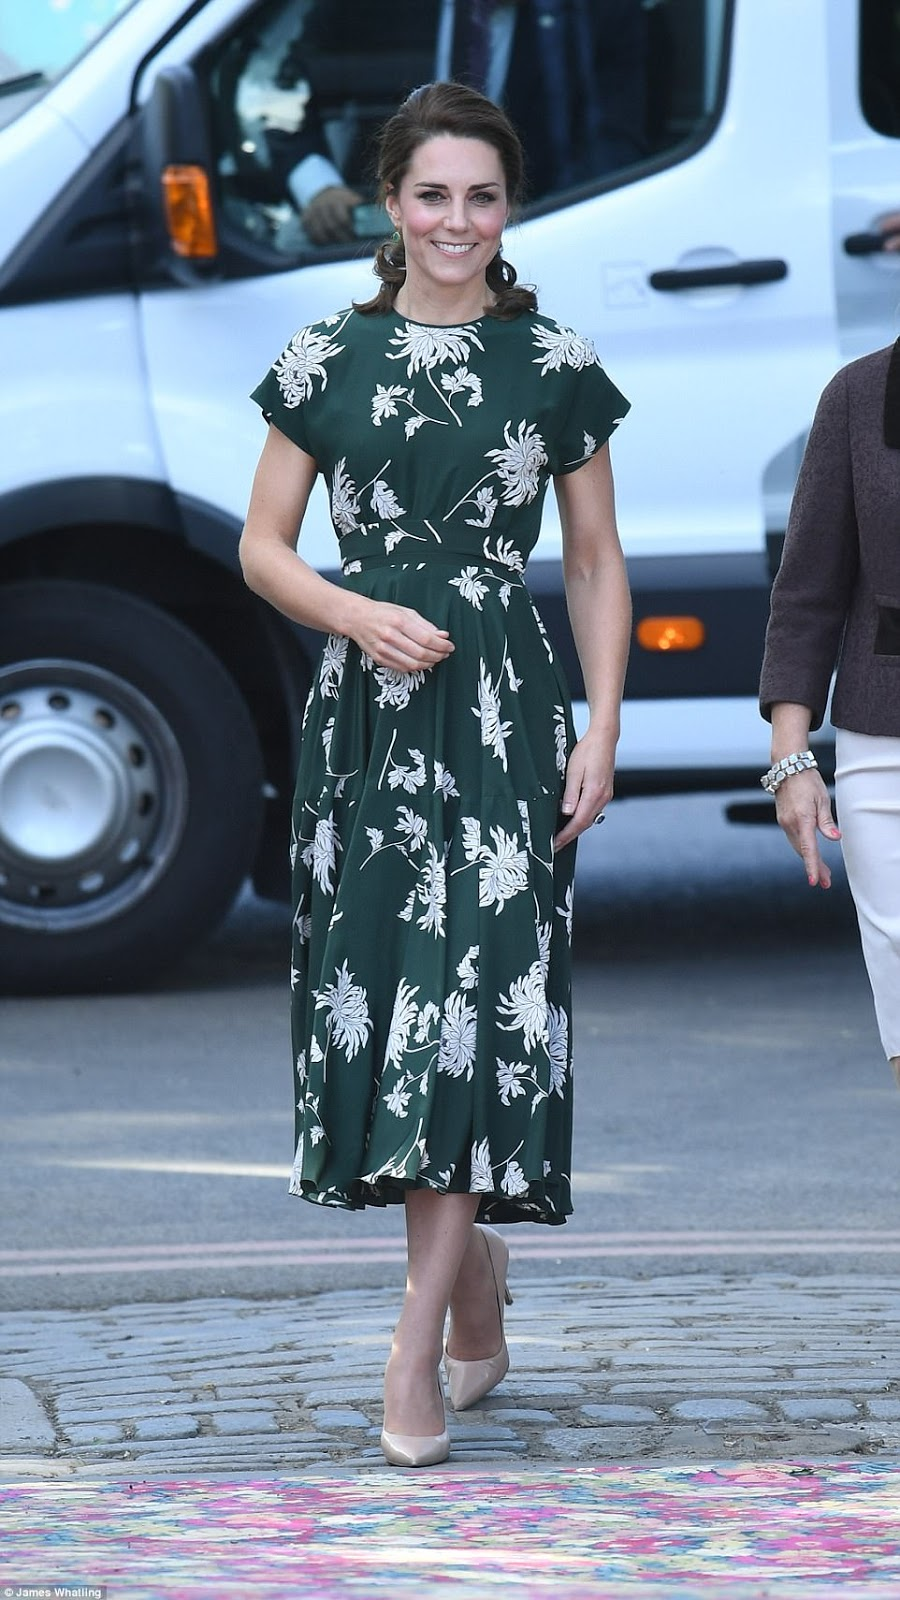 Duchess dazzles in a green frock printed with blooms as she joins Sophie and Beatrice at Chelsea Flower Show